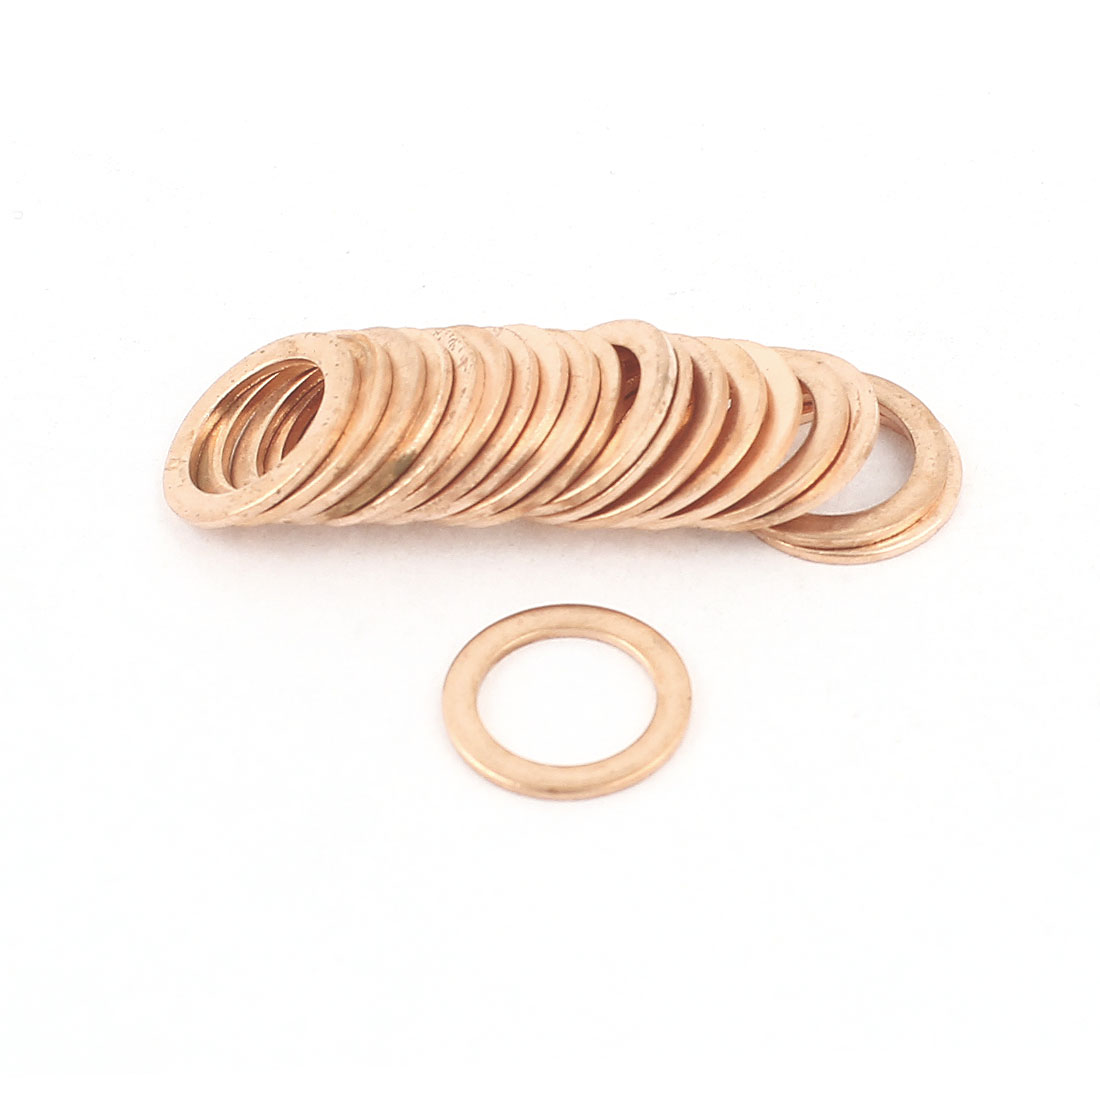 UXCELL 20 Pcs/lot 10Mm X 14Mm X 1Mm Copper Flat Washer Gasket Spacer Seal Fitting Copper Washers Fastener rc car spacer washer flat head gasket aluminum black 6 x3 5mm spacer washers top quality free shipping 10pcs lot